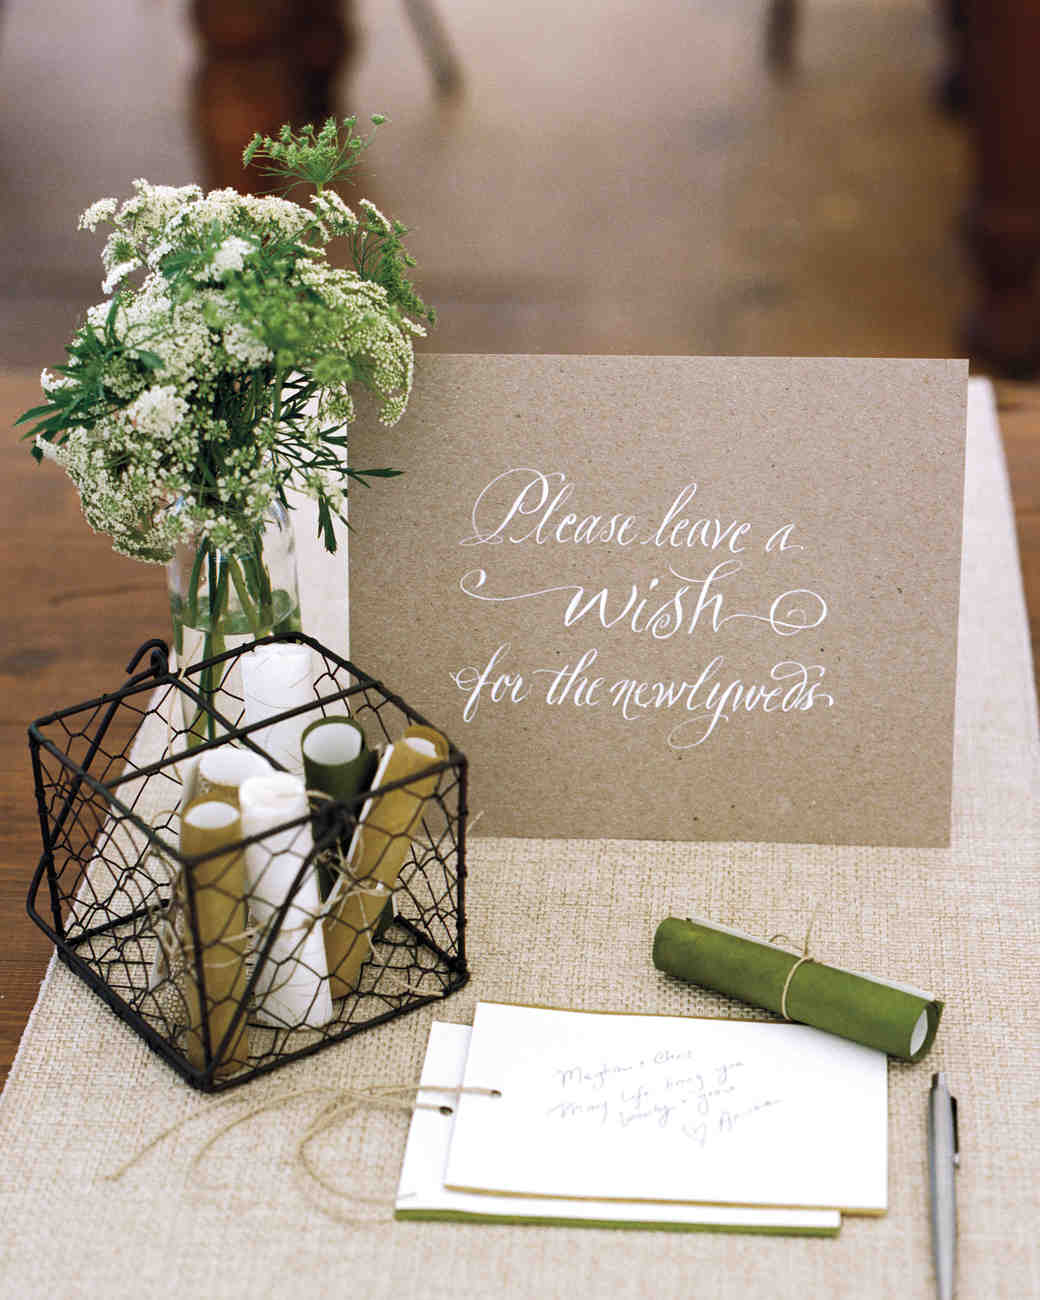 46 Guest Books from Real Weddings | Martha Stewart Weddings